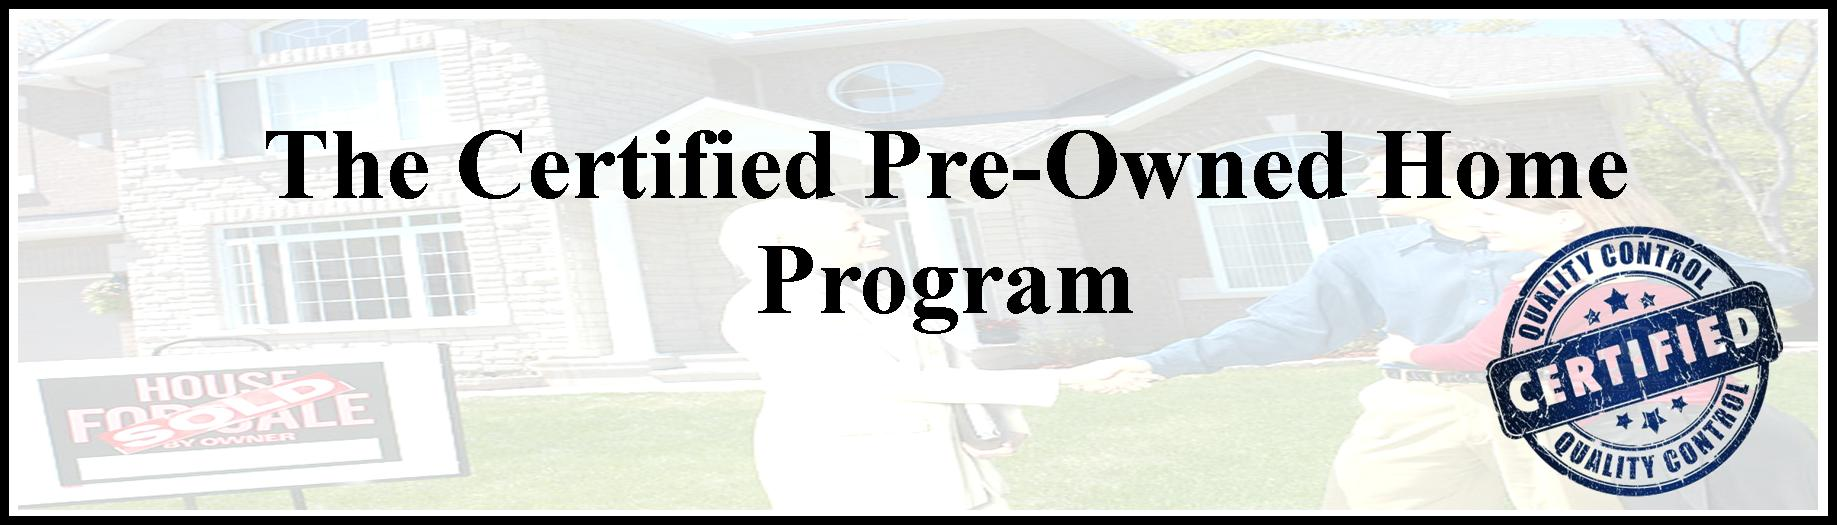 Certified Pre-Owned Home Program